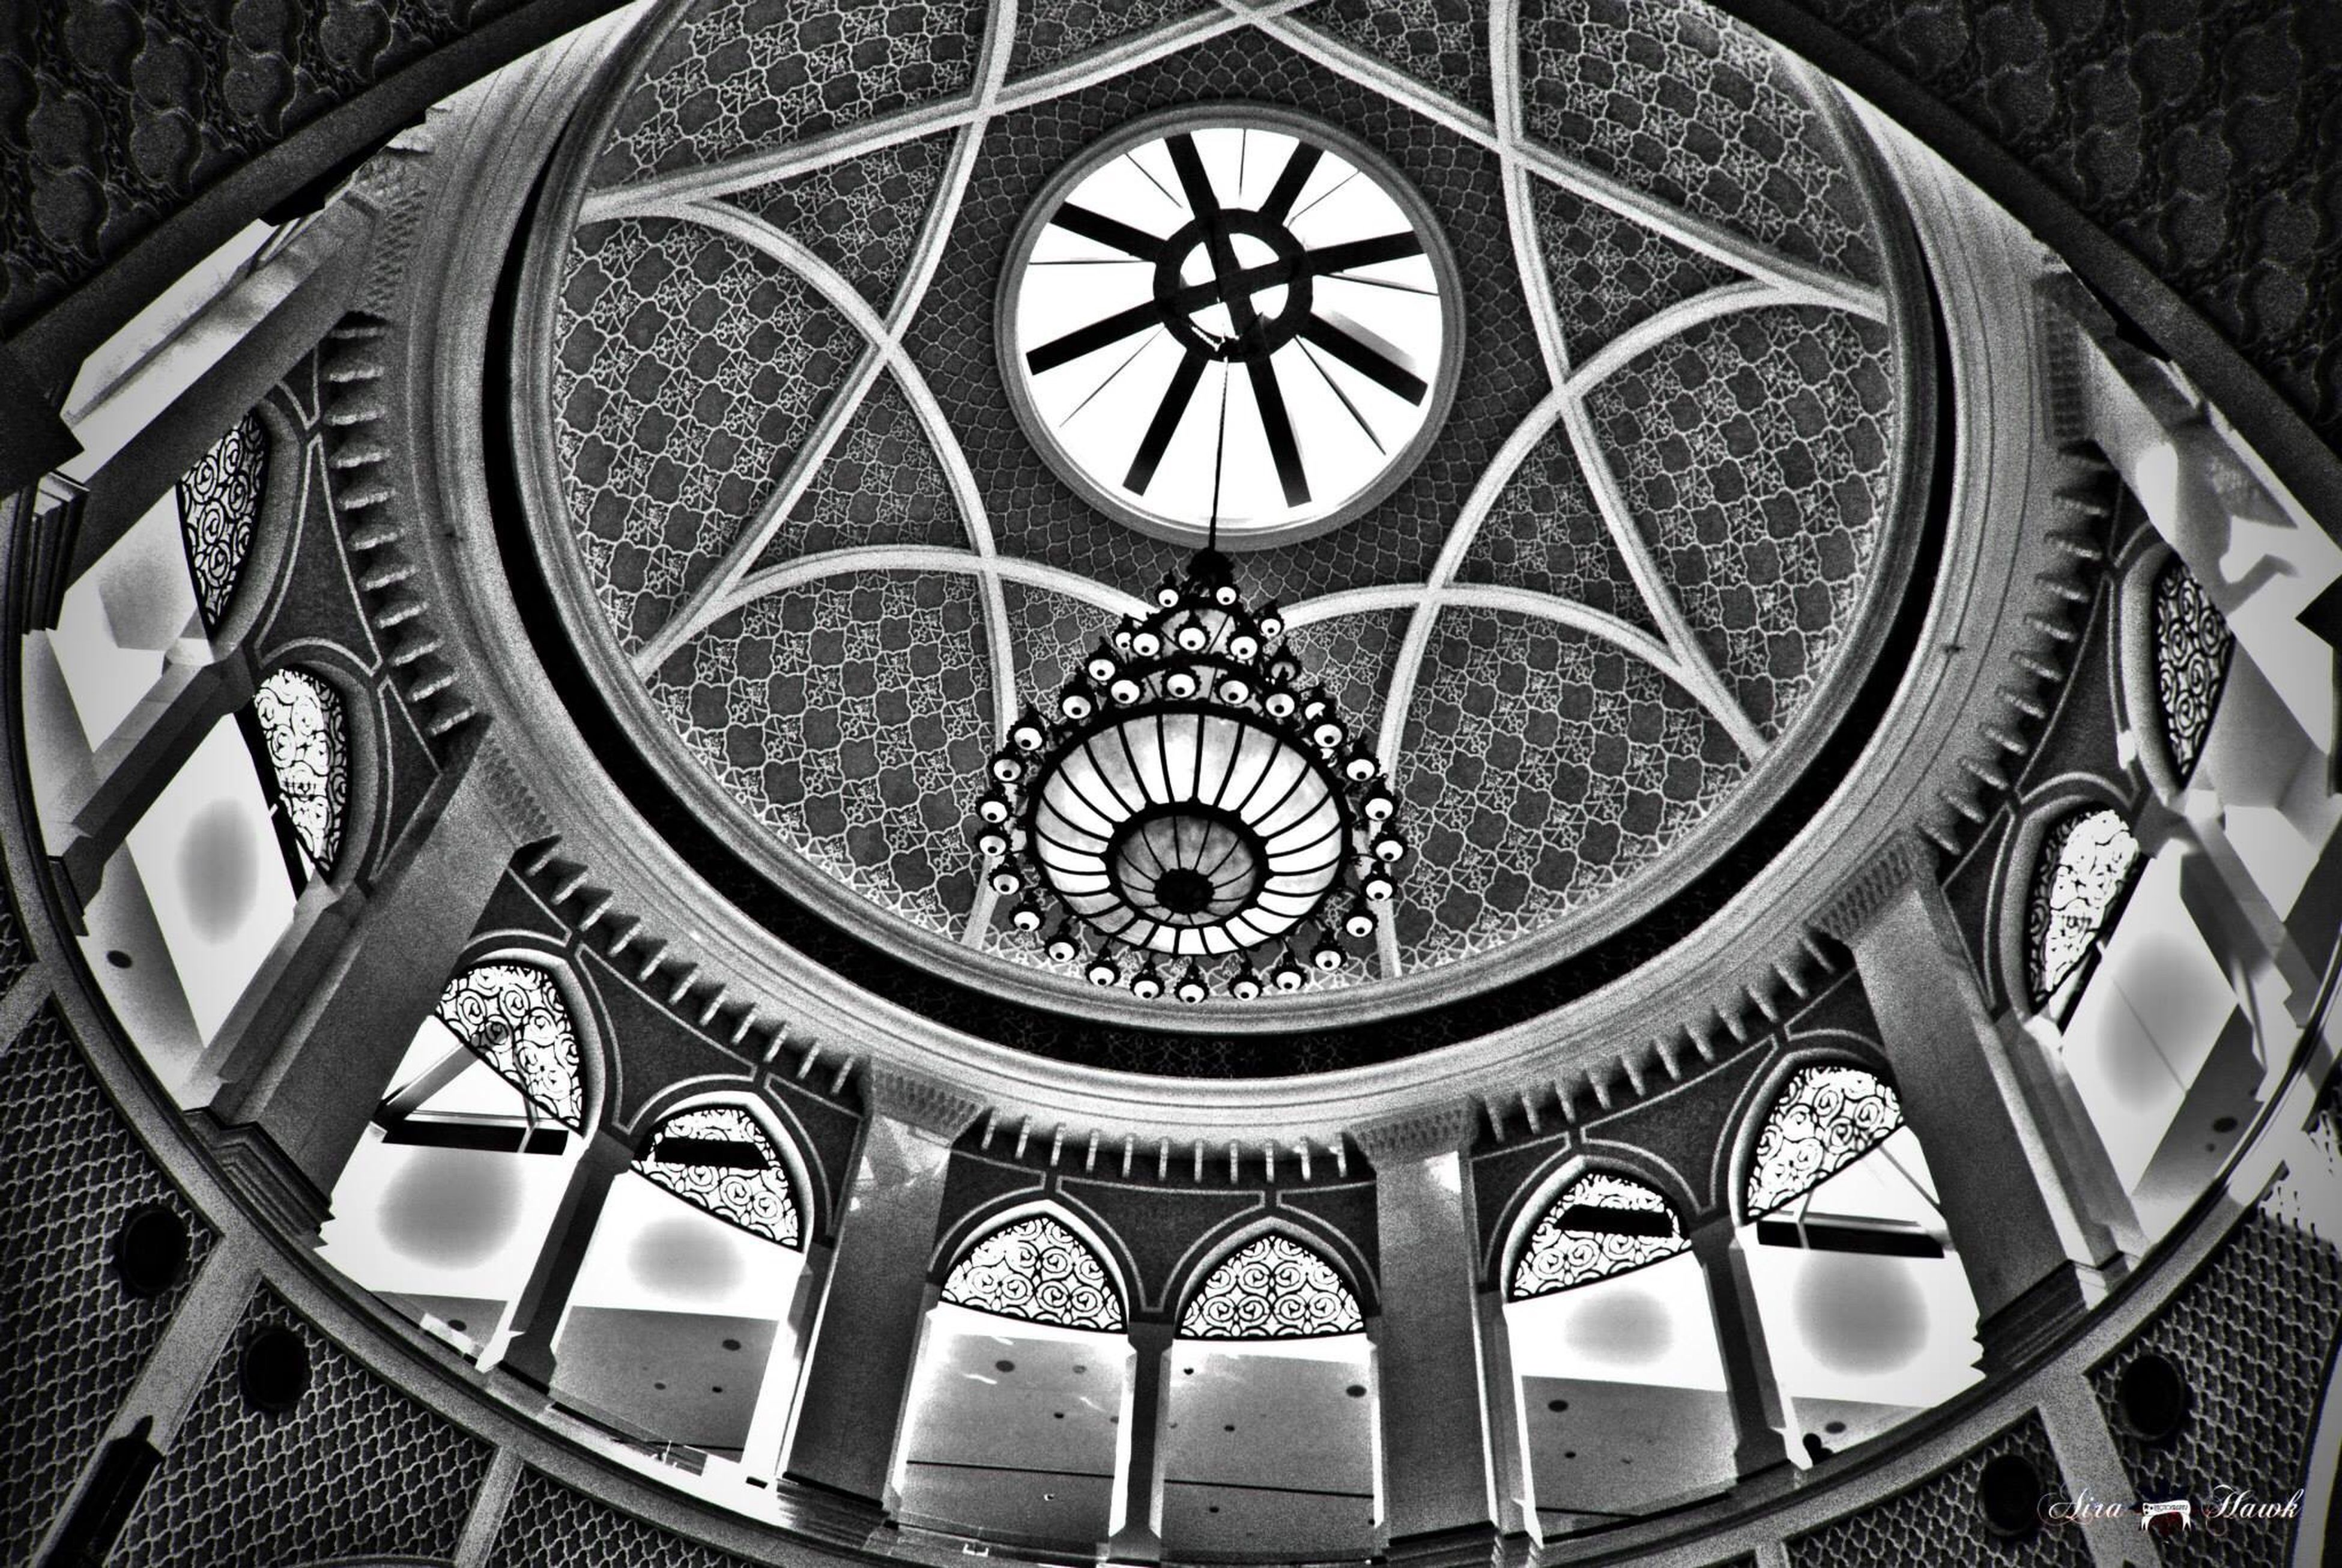 architecture, indoors, time, no people, clock face, place of worship, clock, day, medieval, astrology sign, minute hand